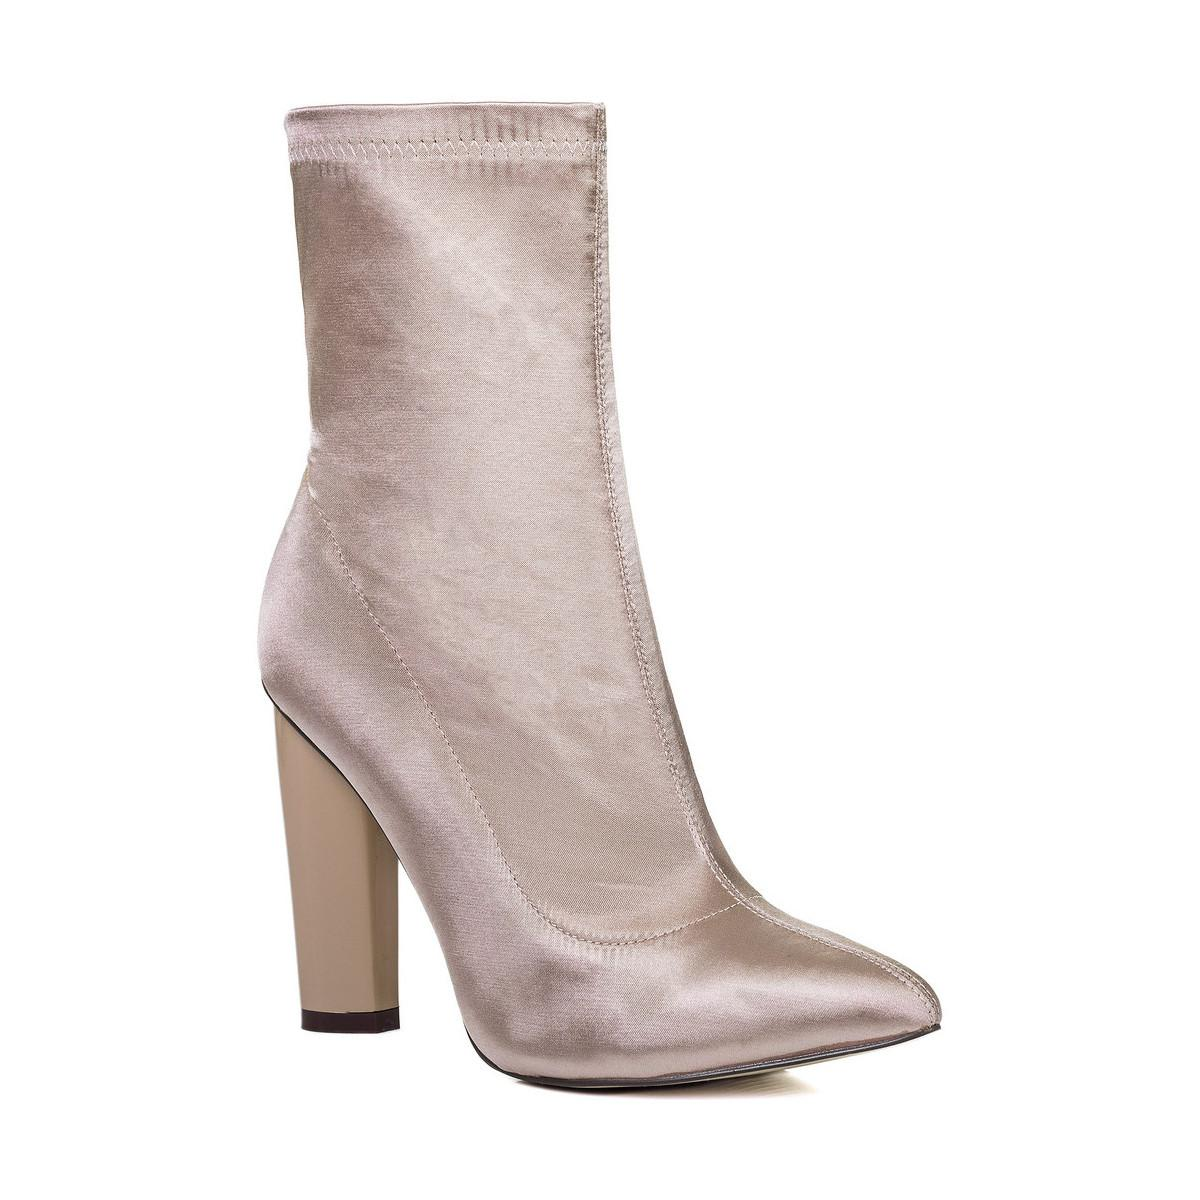 f0a6a727313 Spylovebuy Rhino Women s Low Ankle Boots In Beige in Natural - Lyst